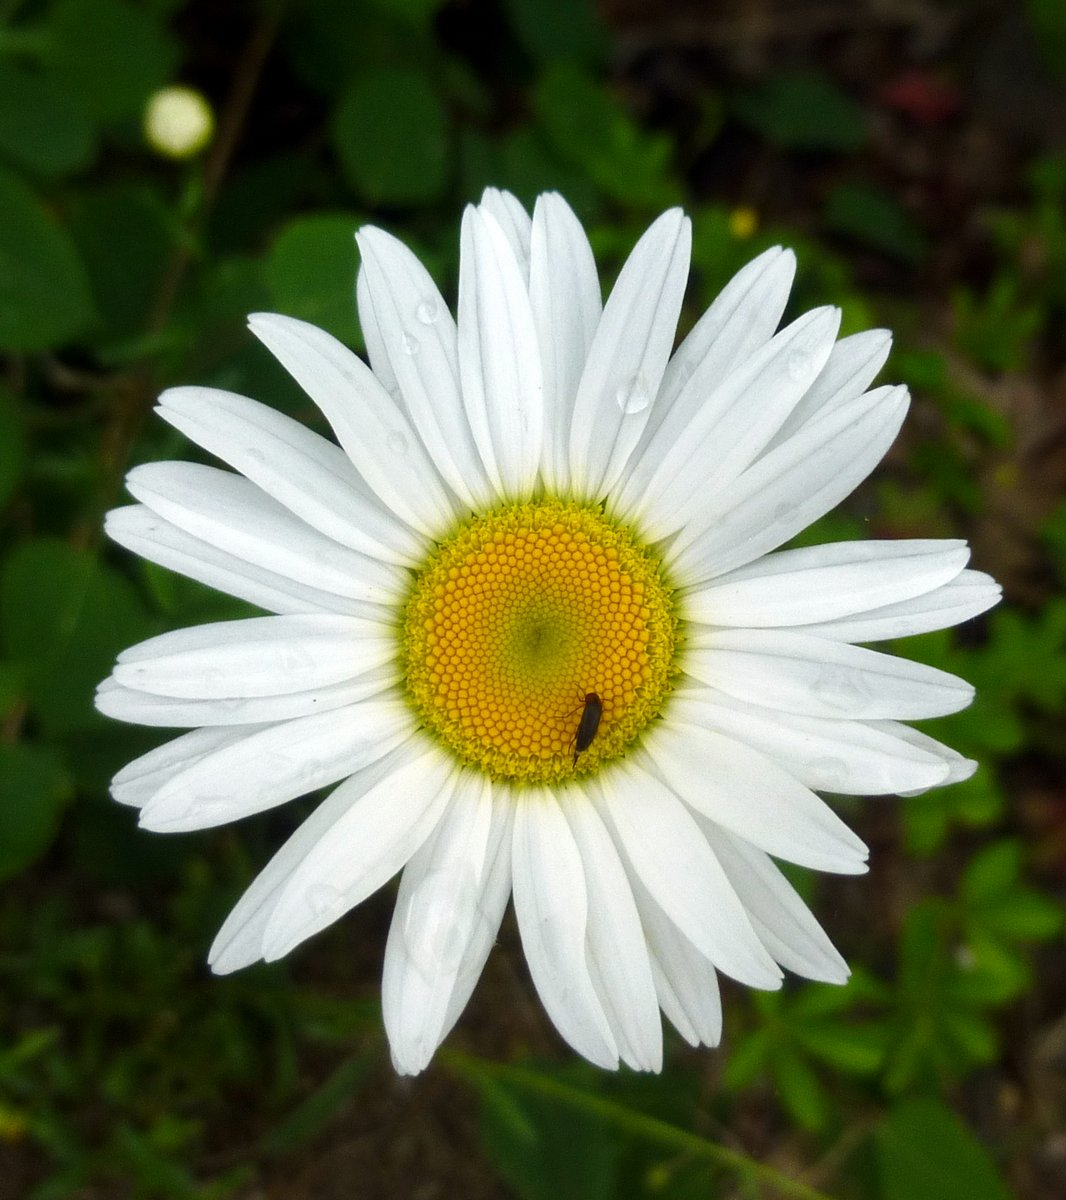 Early june flowers new hampshire garden solutions i got married in june and we couldnt afford flowers from a florist so we picked ox eye daisy blossoms leucanthemum vulgare thats when i discovered that izmirmasajfo Choice Image